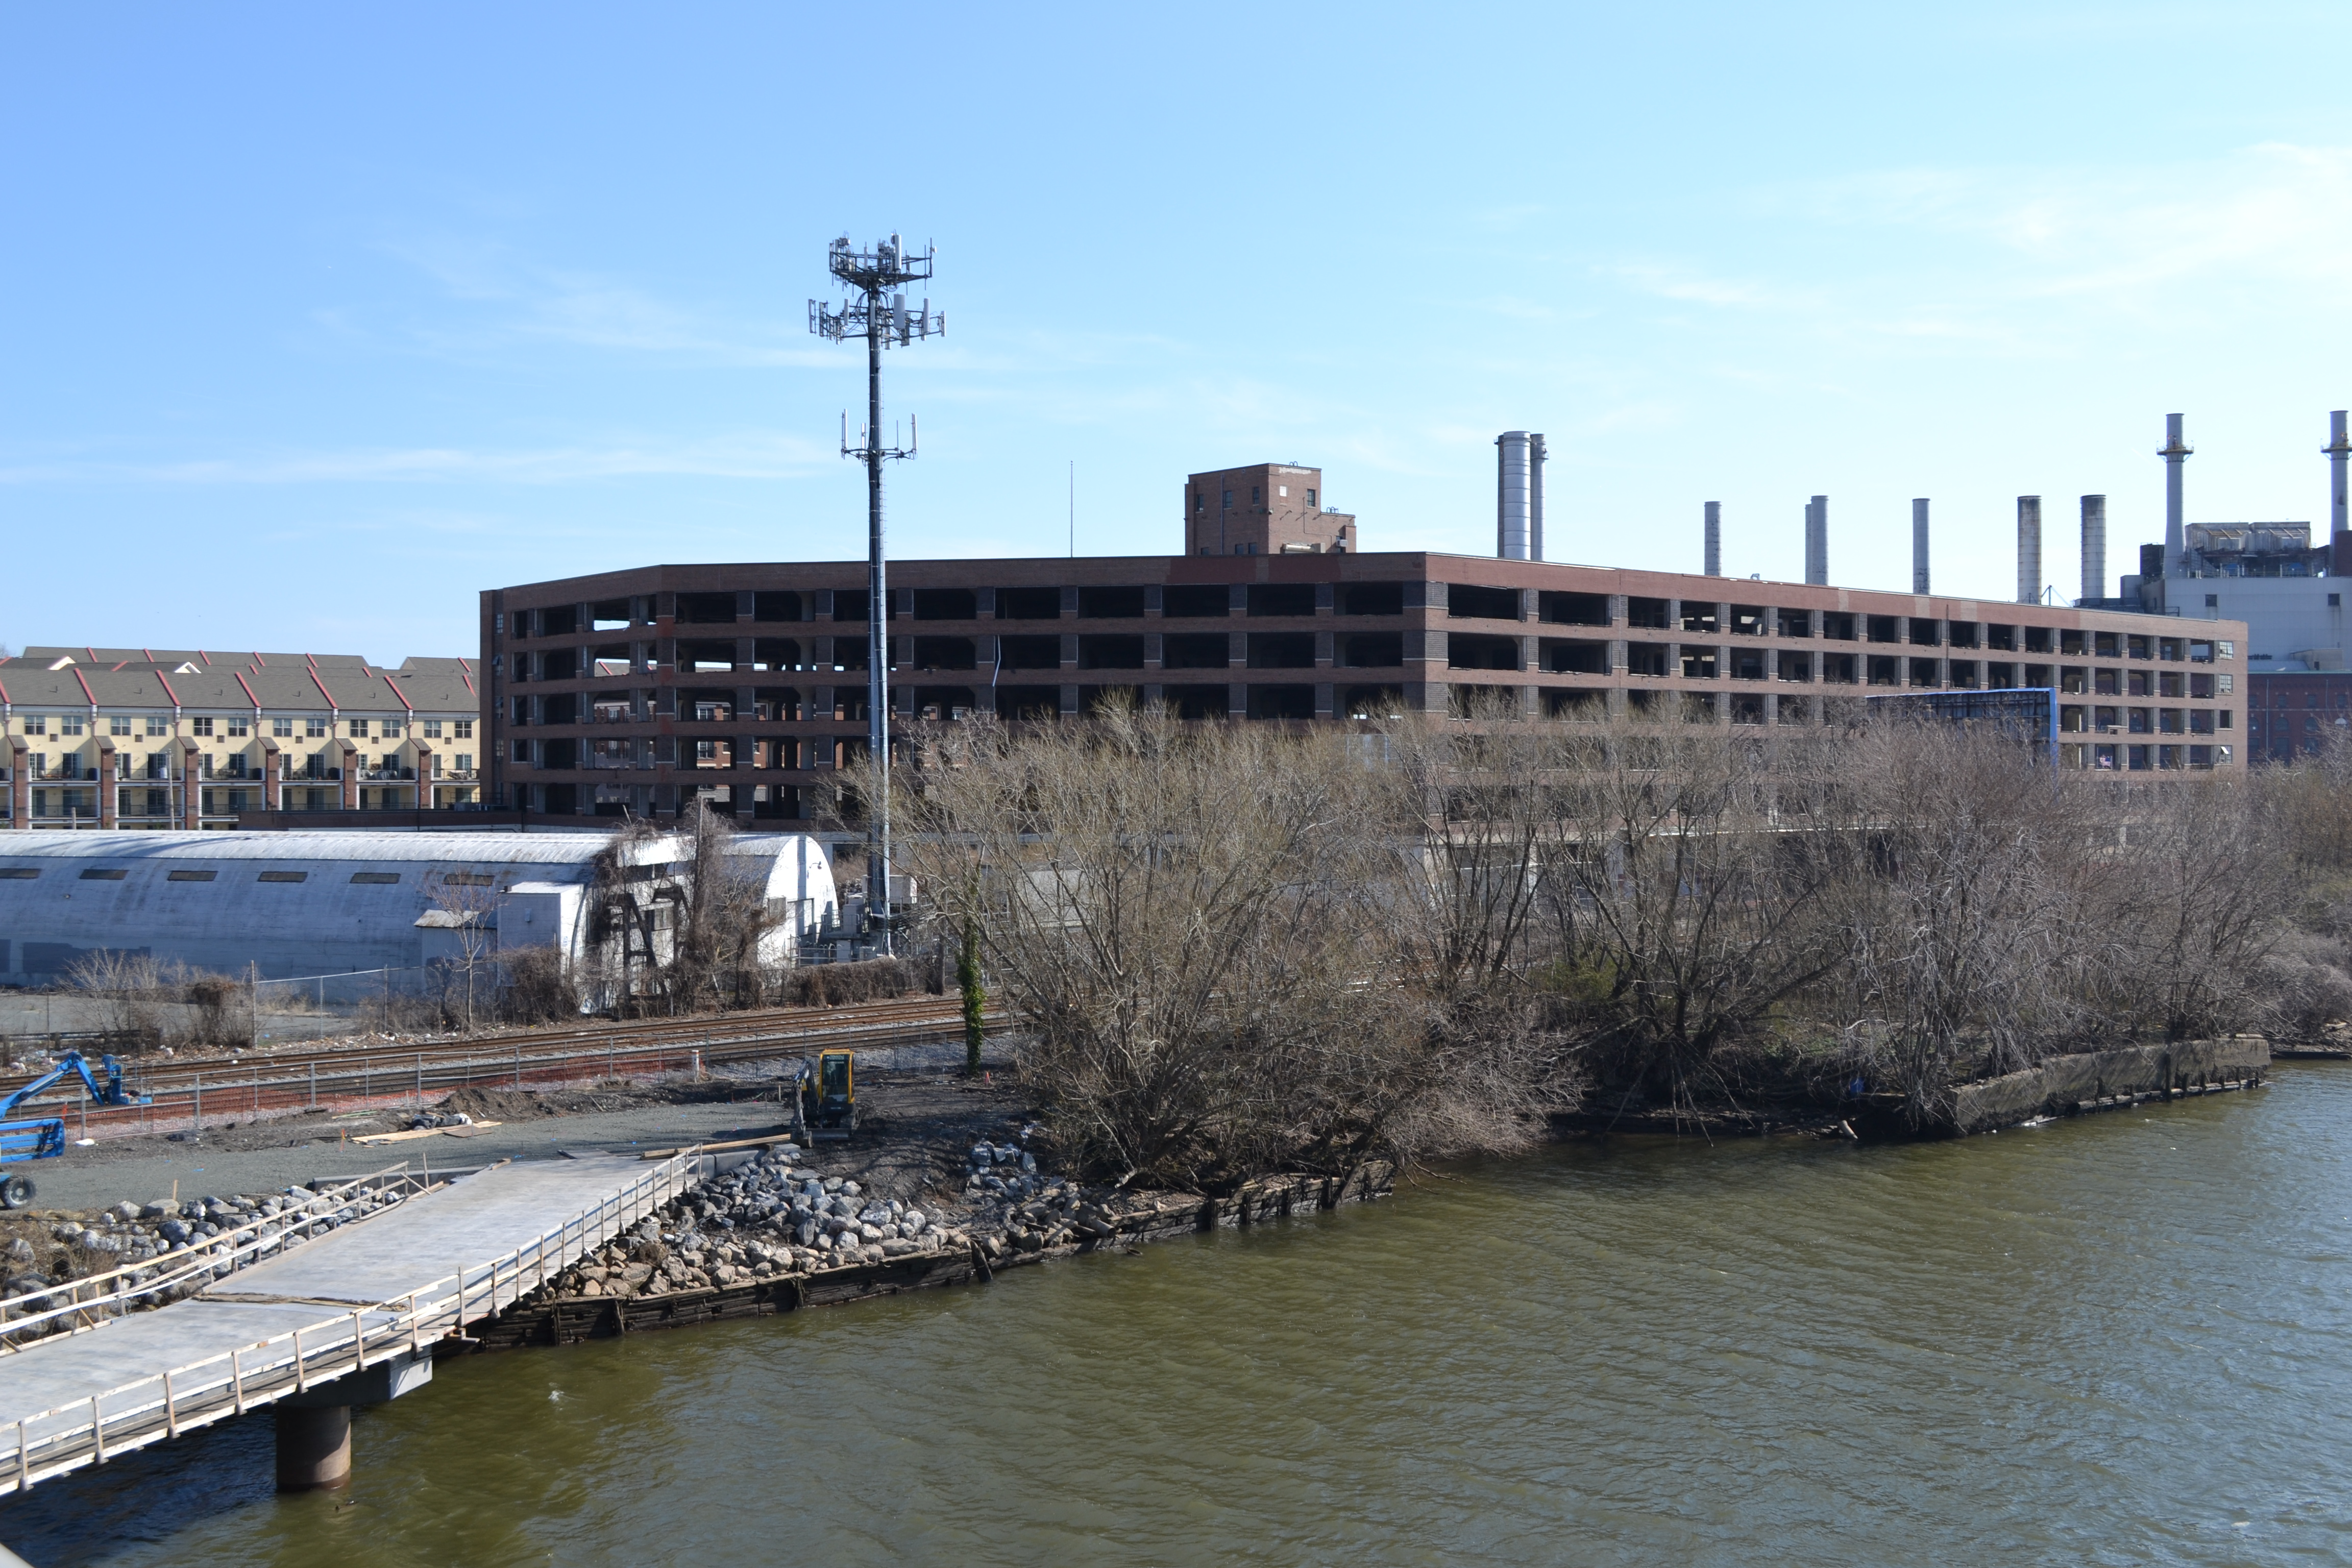 Schuylkill River Development Corporation has plans to extend the Schuylkill River Trail in front of the CHOP property